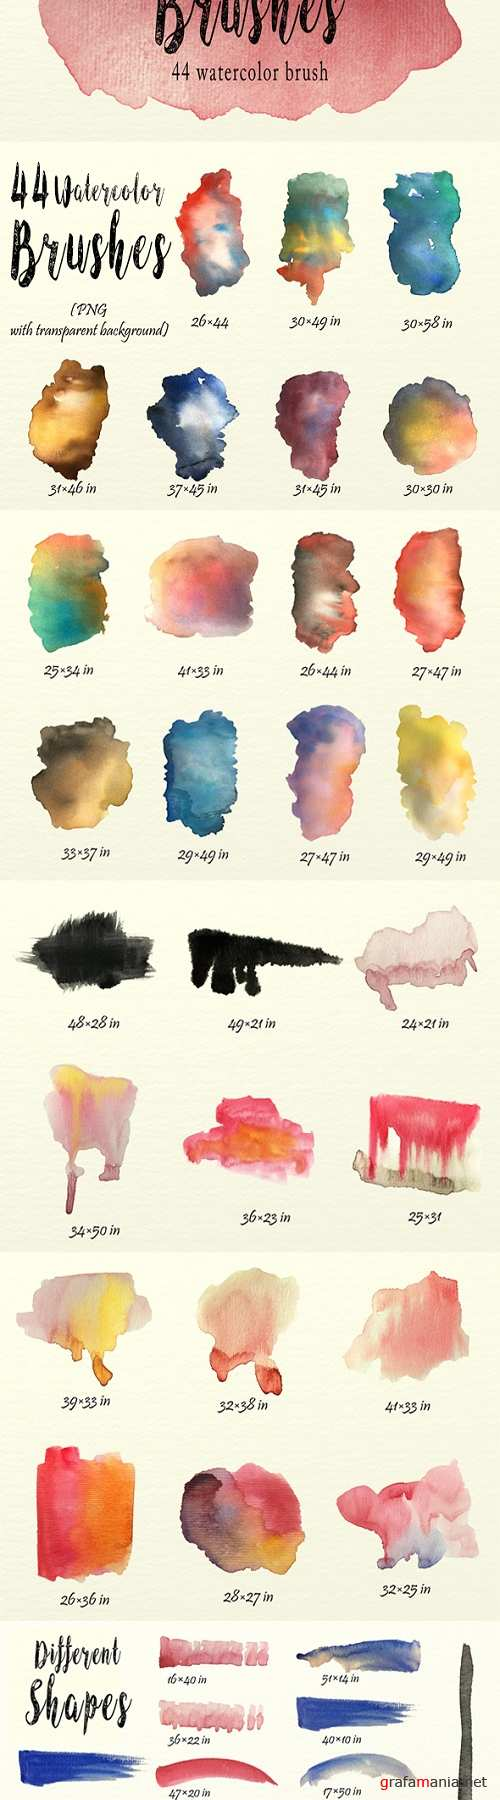 Watercolor Brushes Pack 1726398